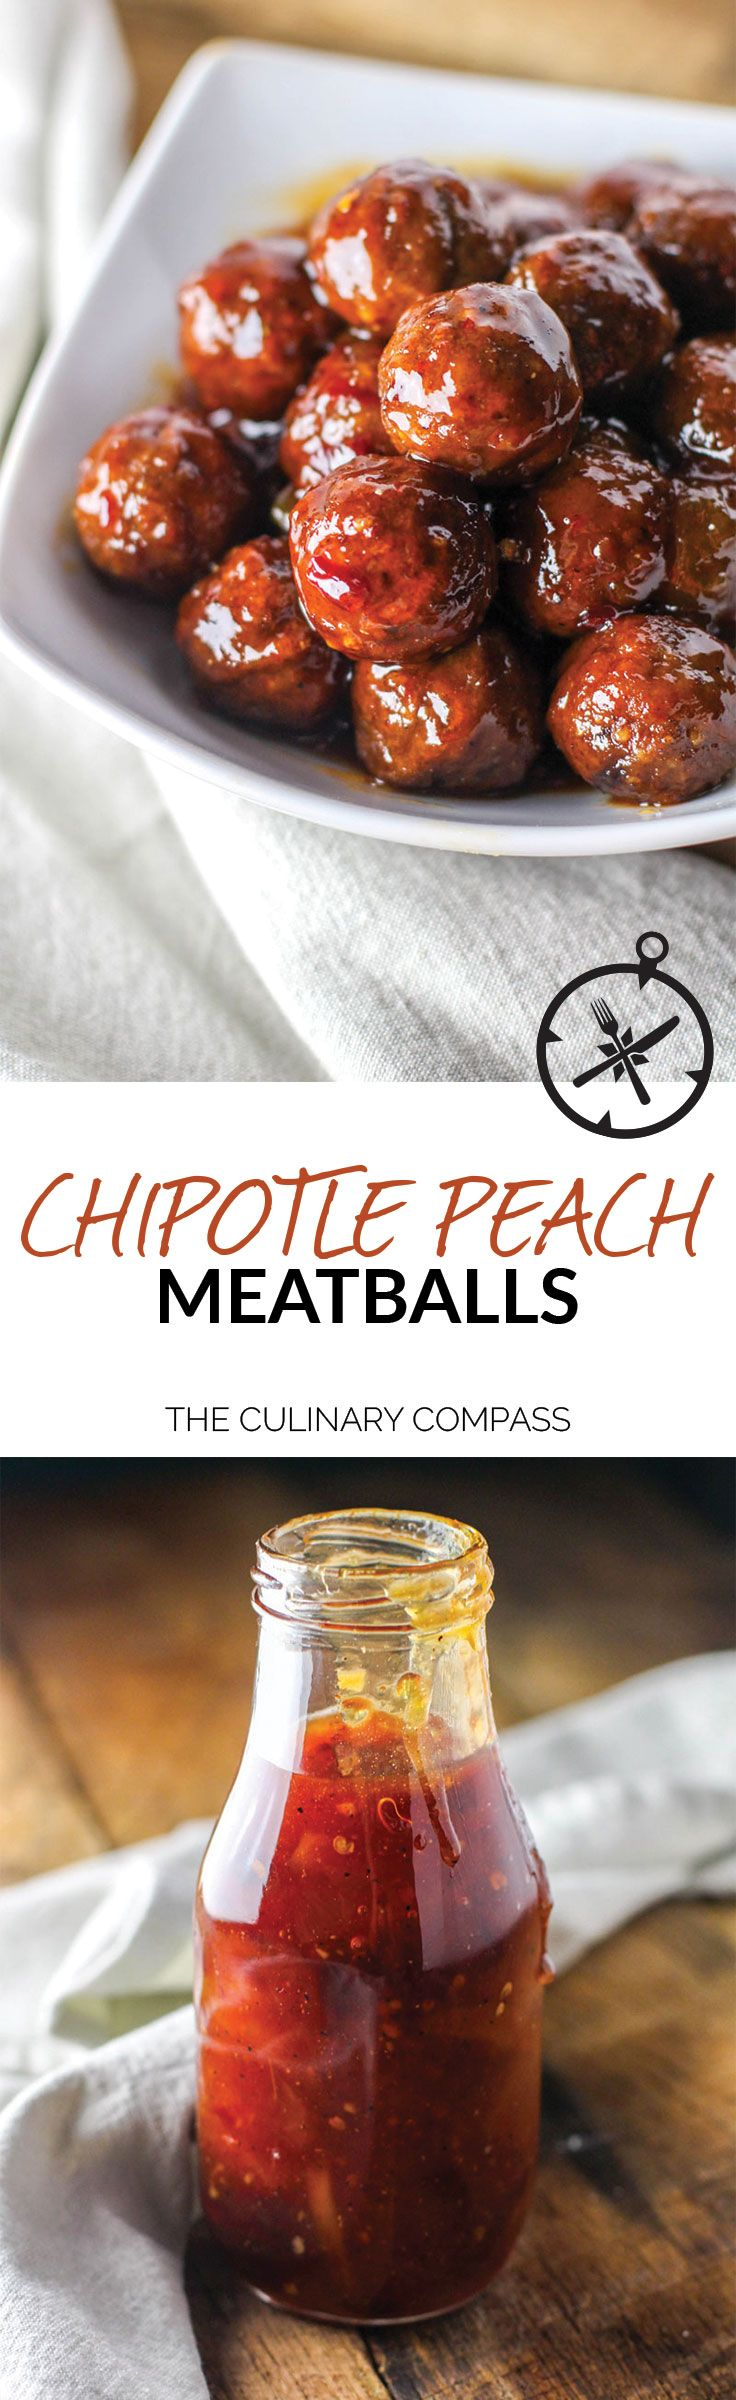 These Chipotle Peach Meatballs have the perfect kick for any occasion and are so easy to make! via @culinarycompass